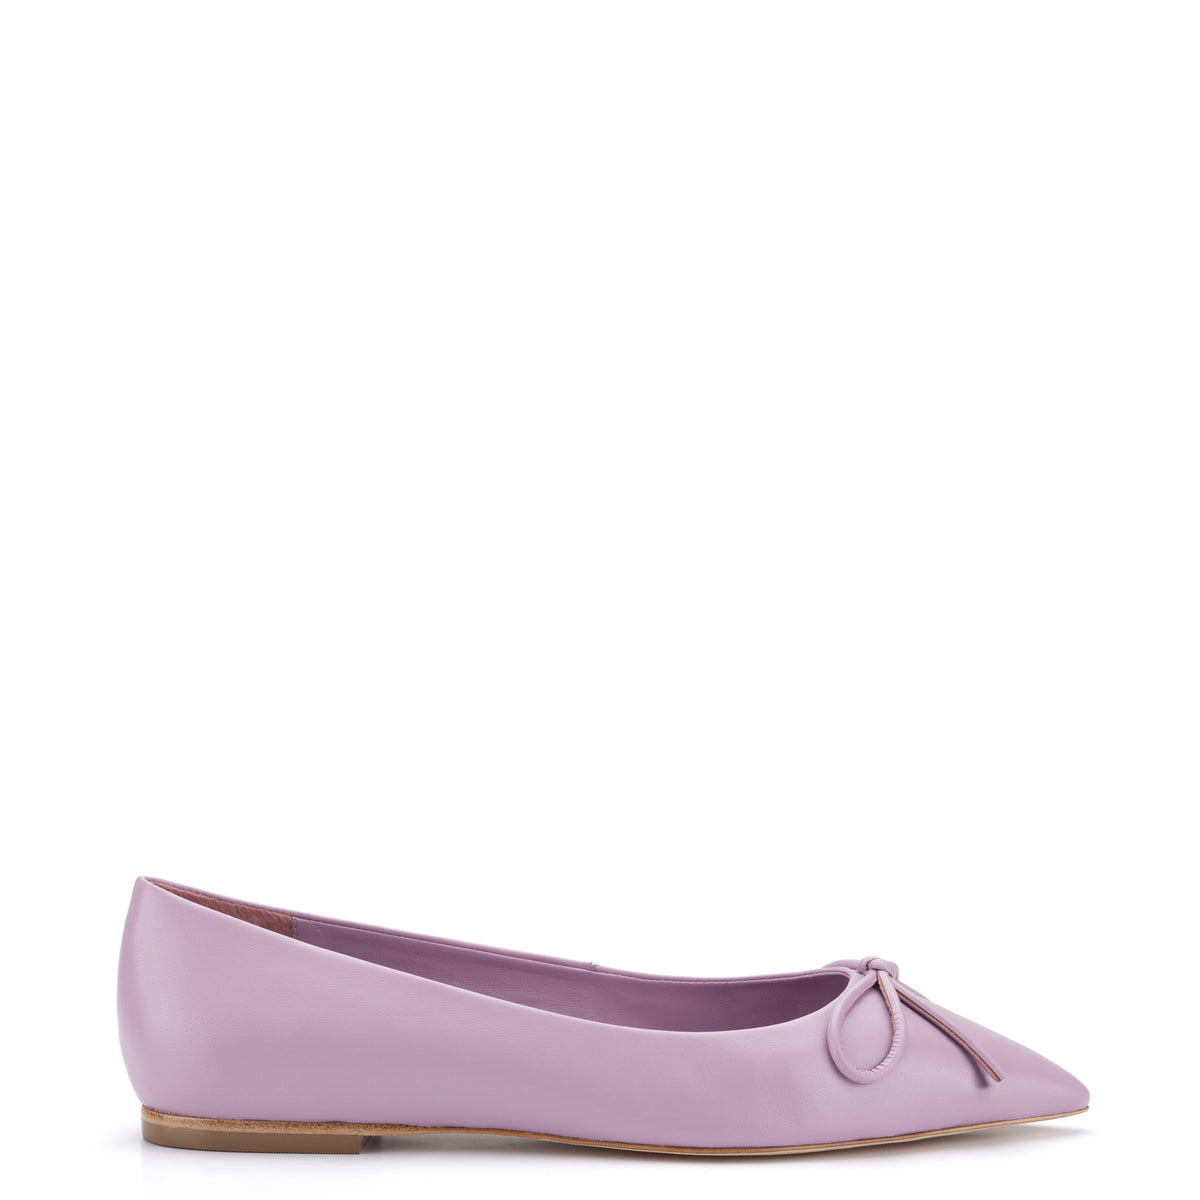 Lee Flat In Lavender Leather